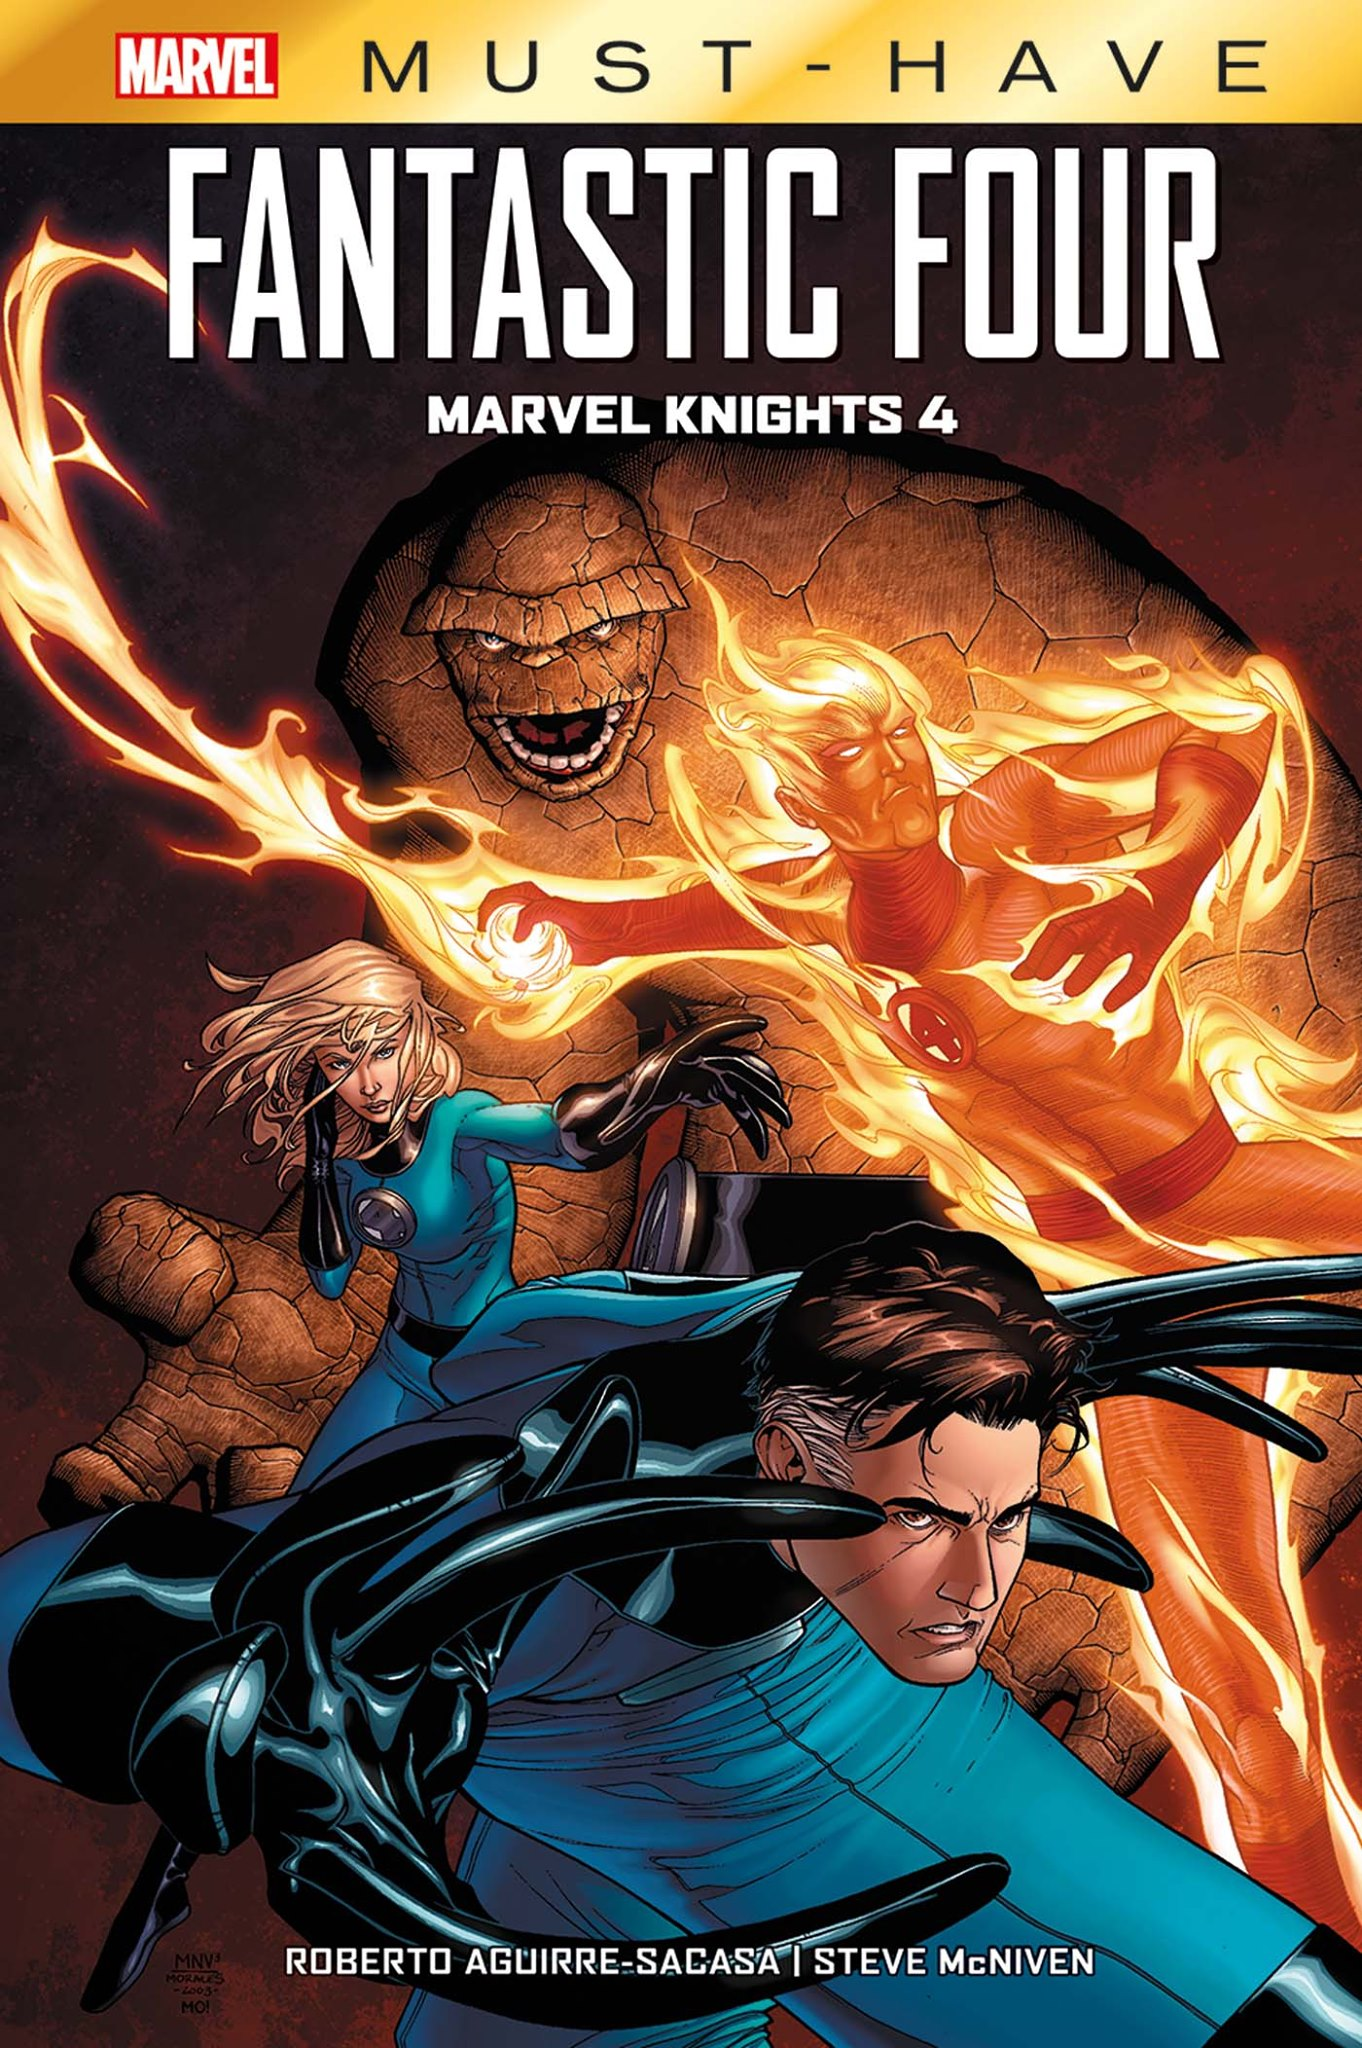 FANTASTIC FOUR MARVEL KNIGHTS 4 (MUST-HAVE)